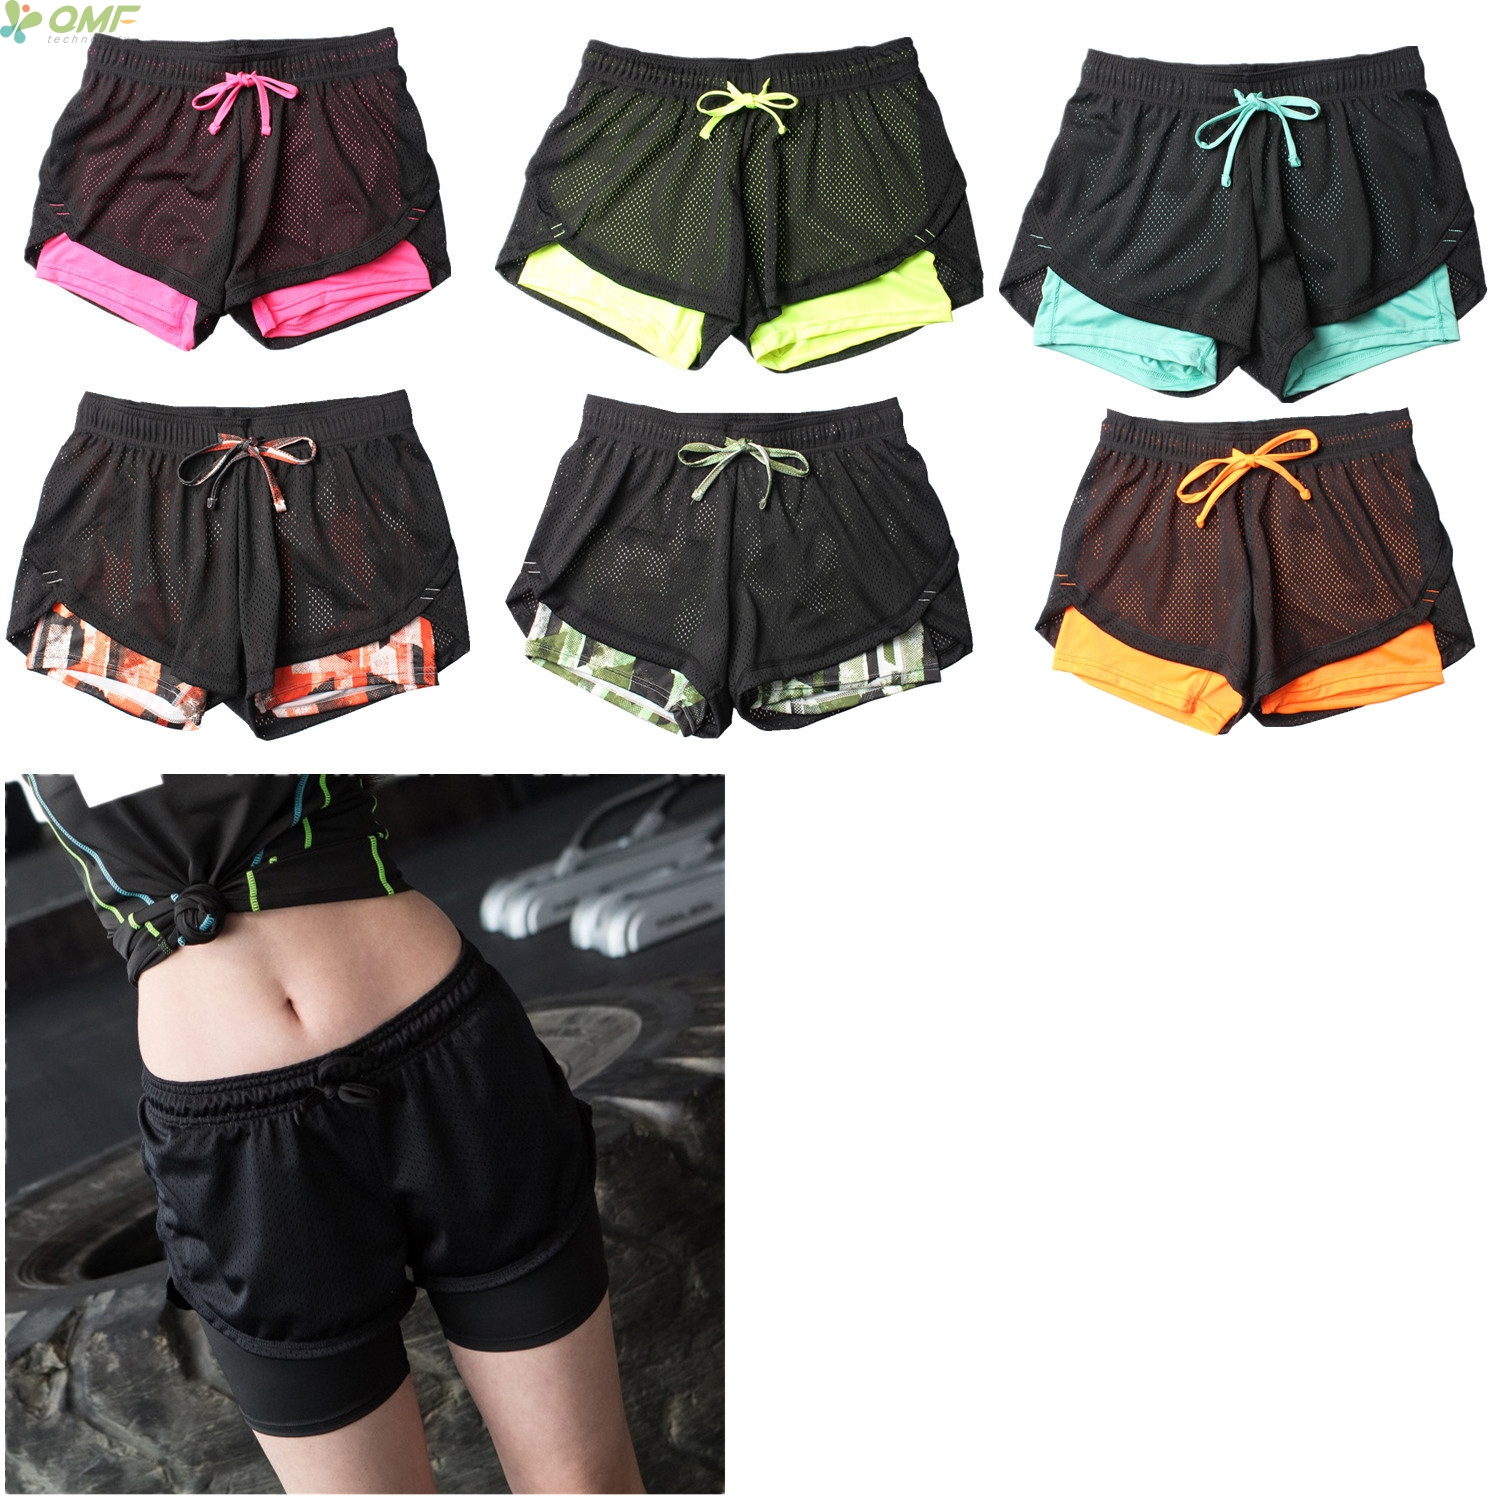 Fashion Women 2 In 1 Fitness Workout Shorts Elastic High Waist Sweat Shorts  Breathable Ladies Shorts 2017 New Arrival quick dry 62ed8941a6